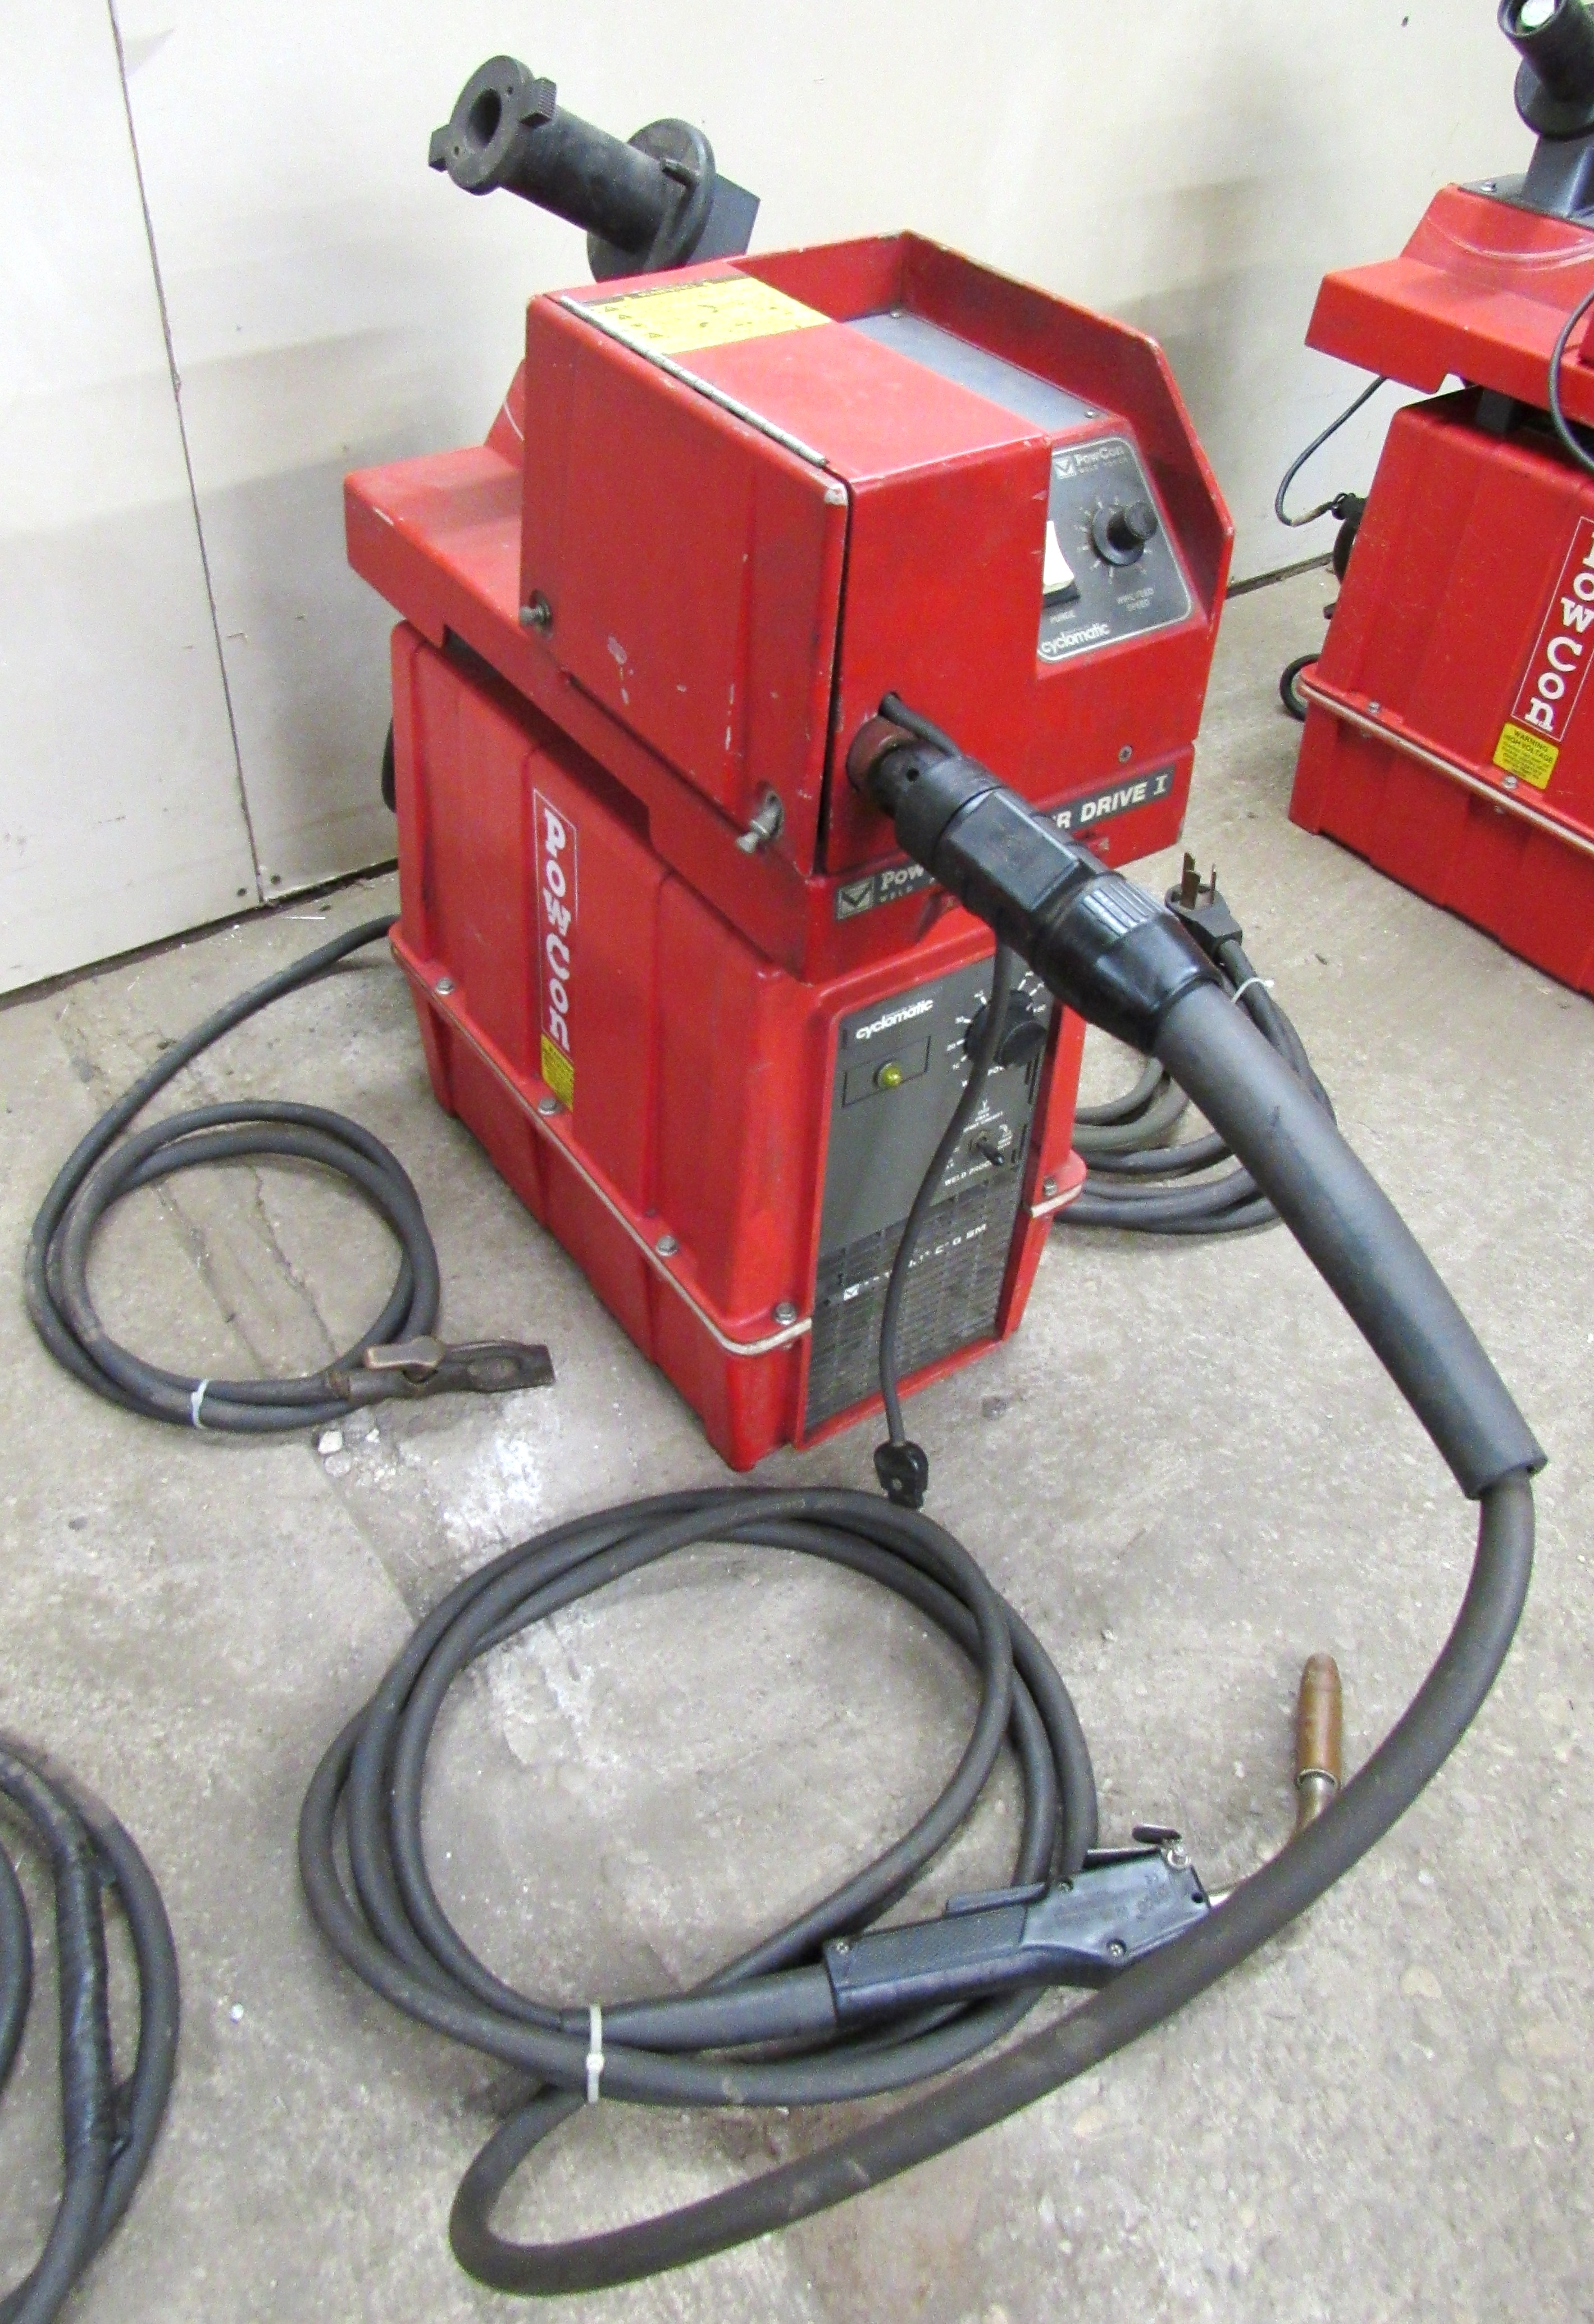 Cyclomatic Powcon 200SM Wire Feed 200 Amp Mig Welding Unit